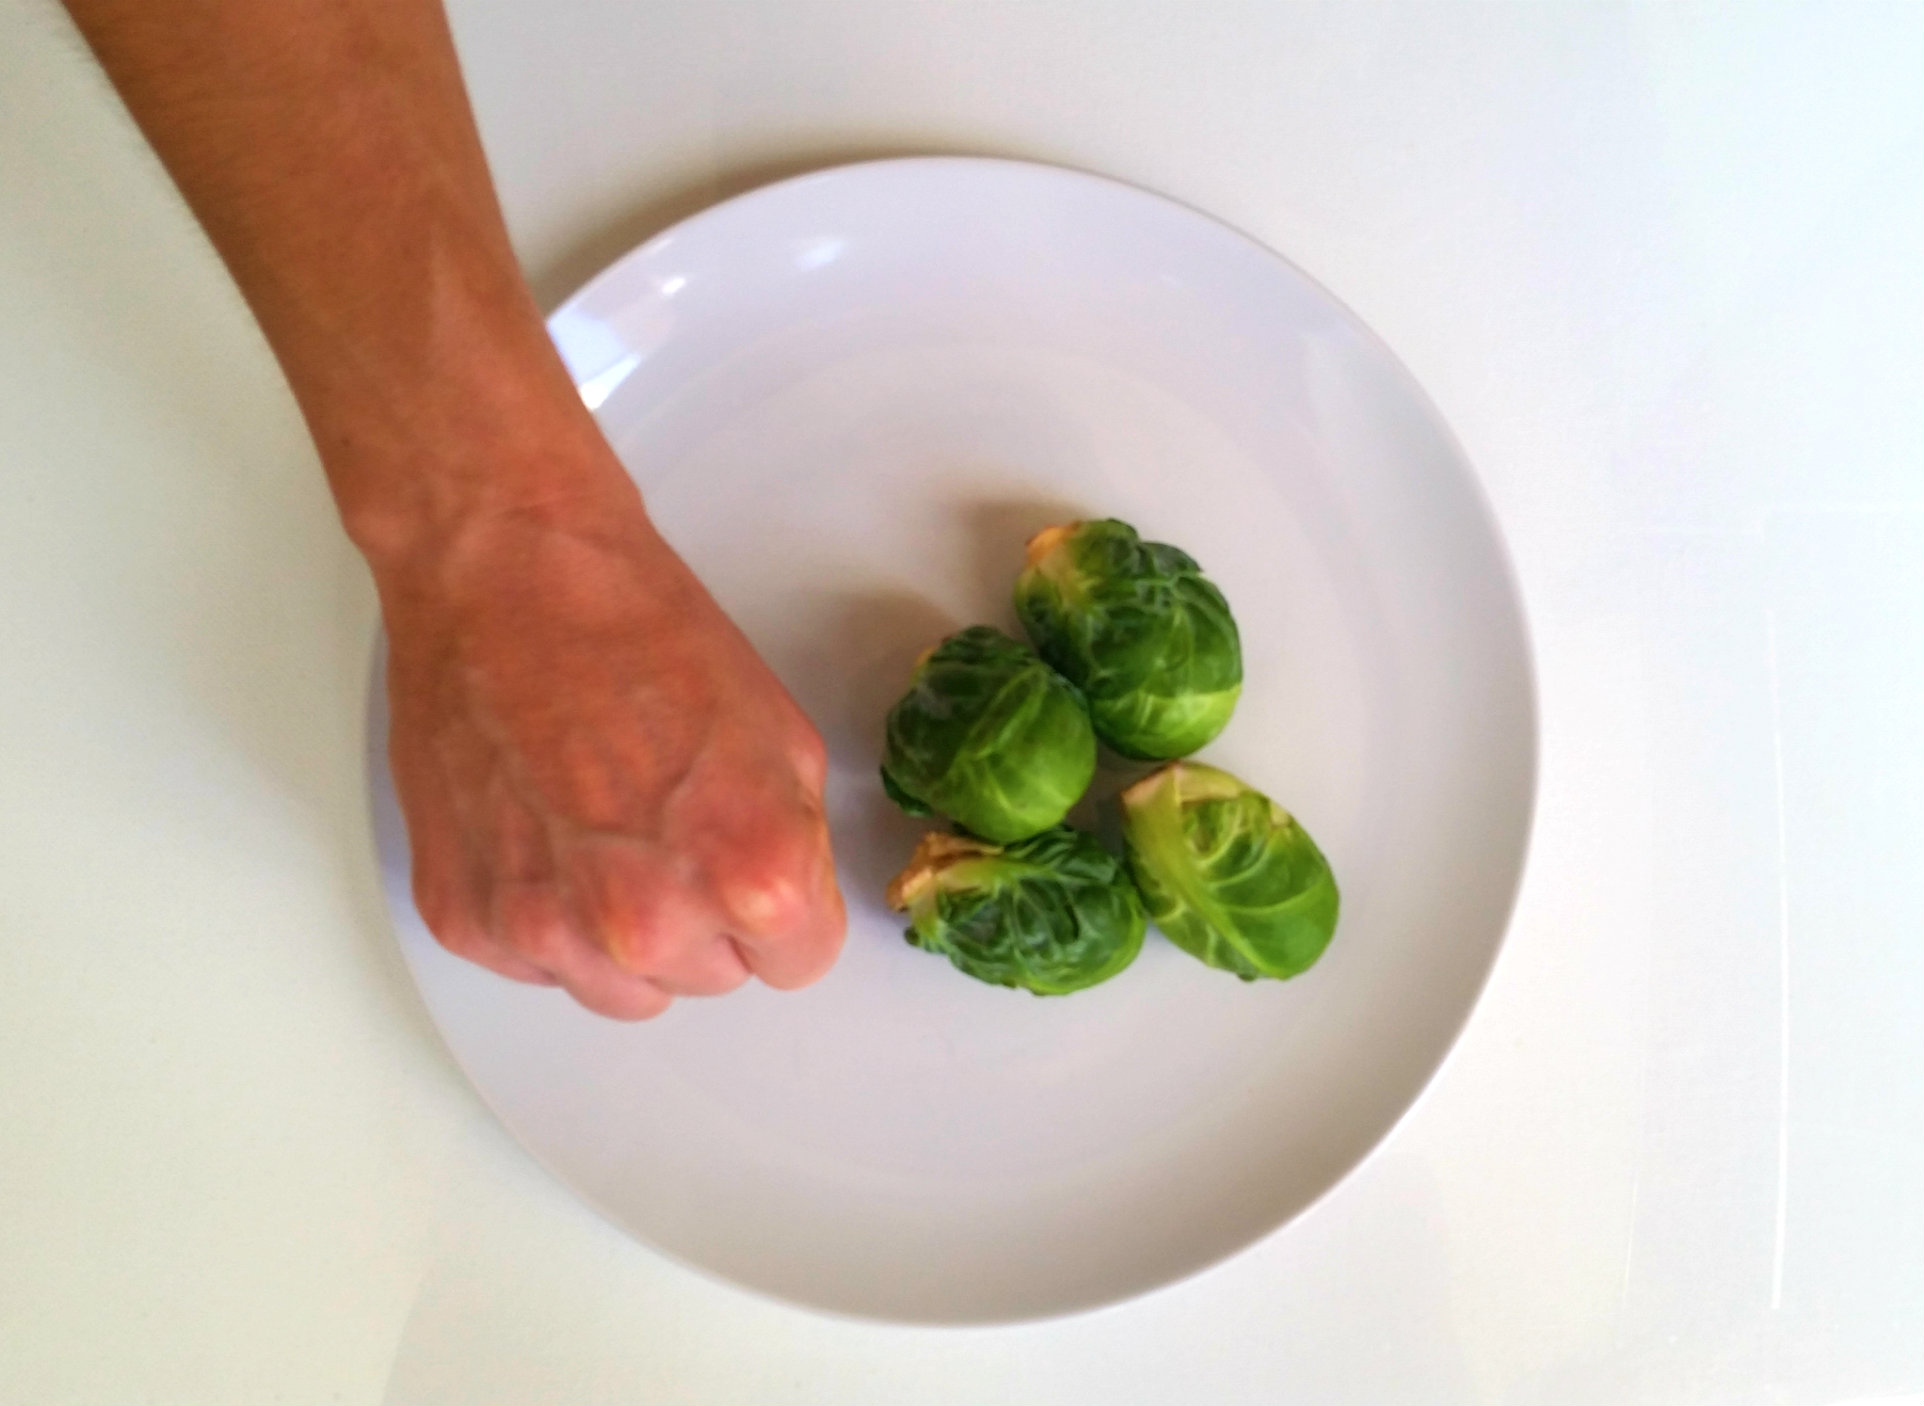 Brussel Sprouts are a vegetable